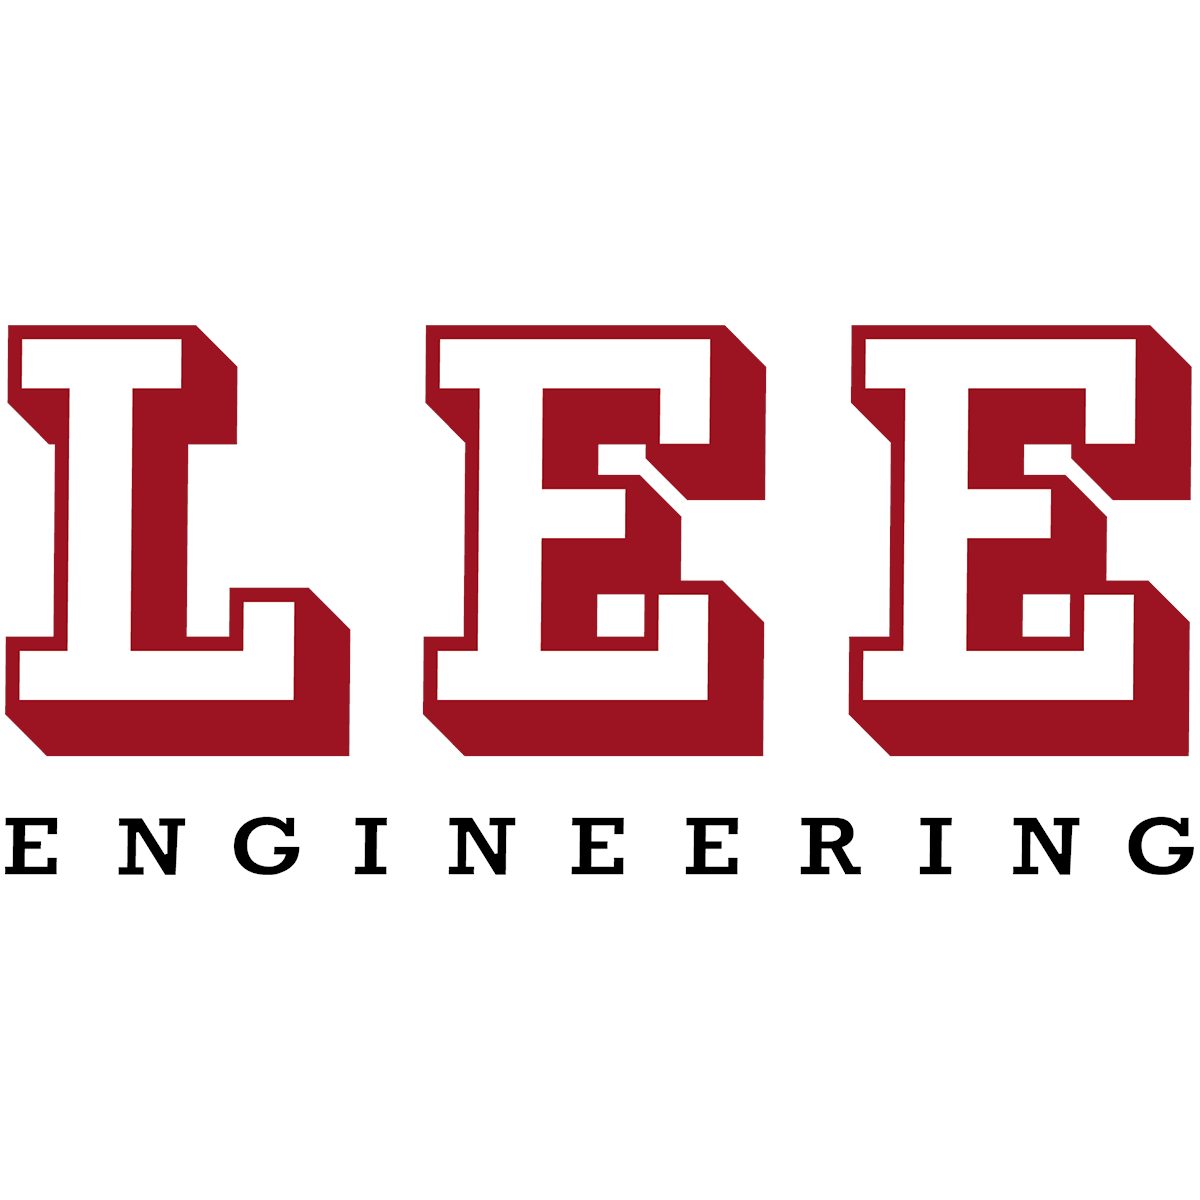 Lee Engineering Lab / Facility Logo